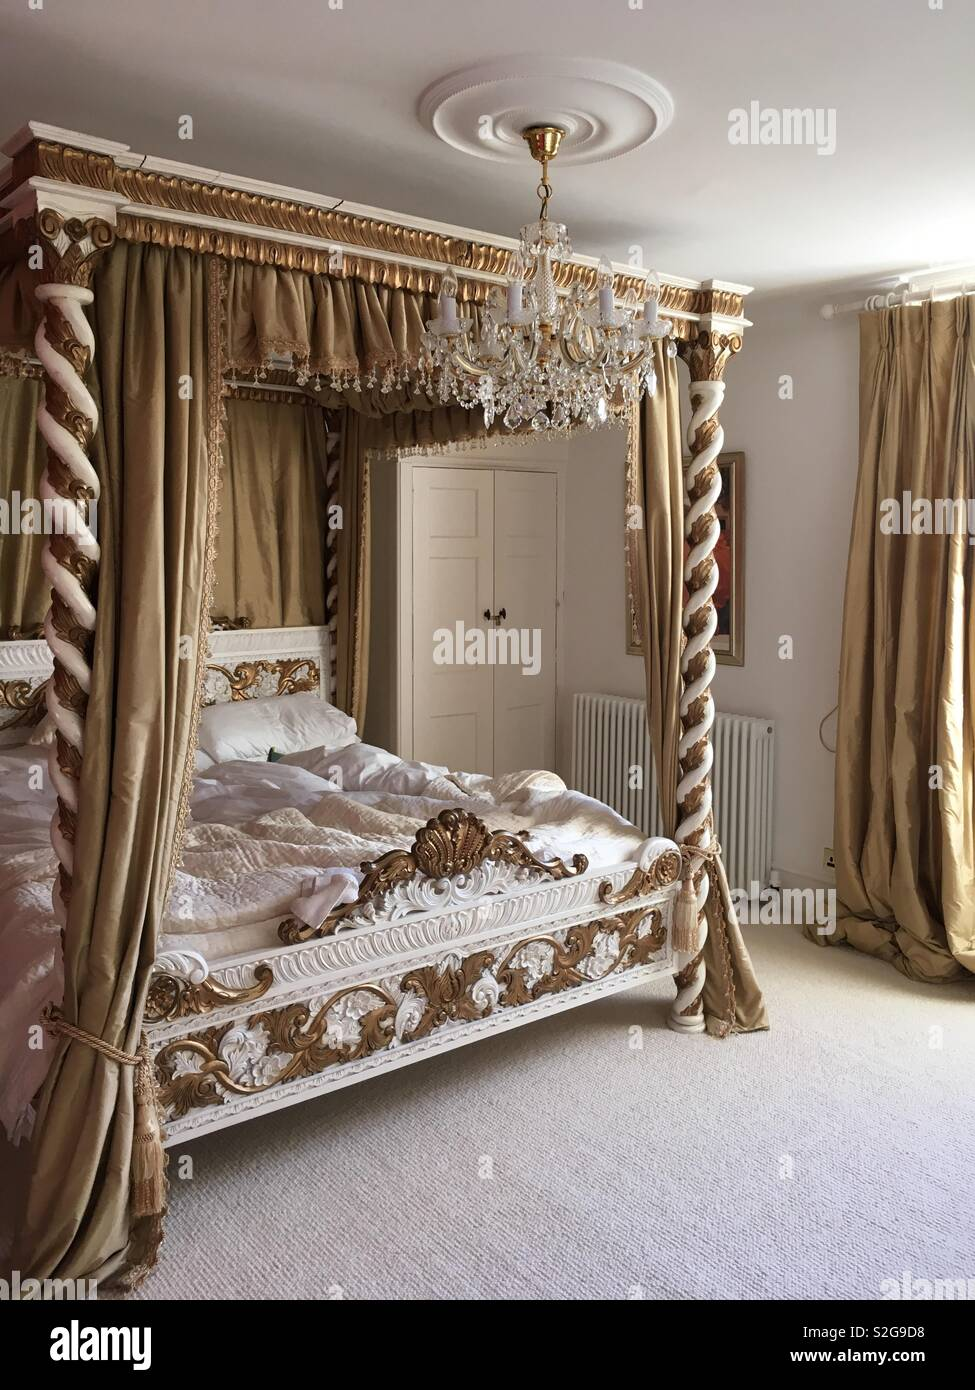 Emperor Bed A Gold Four Poster Emperor Bed Made From Carved Wood Stock Photo